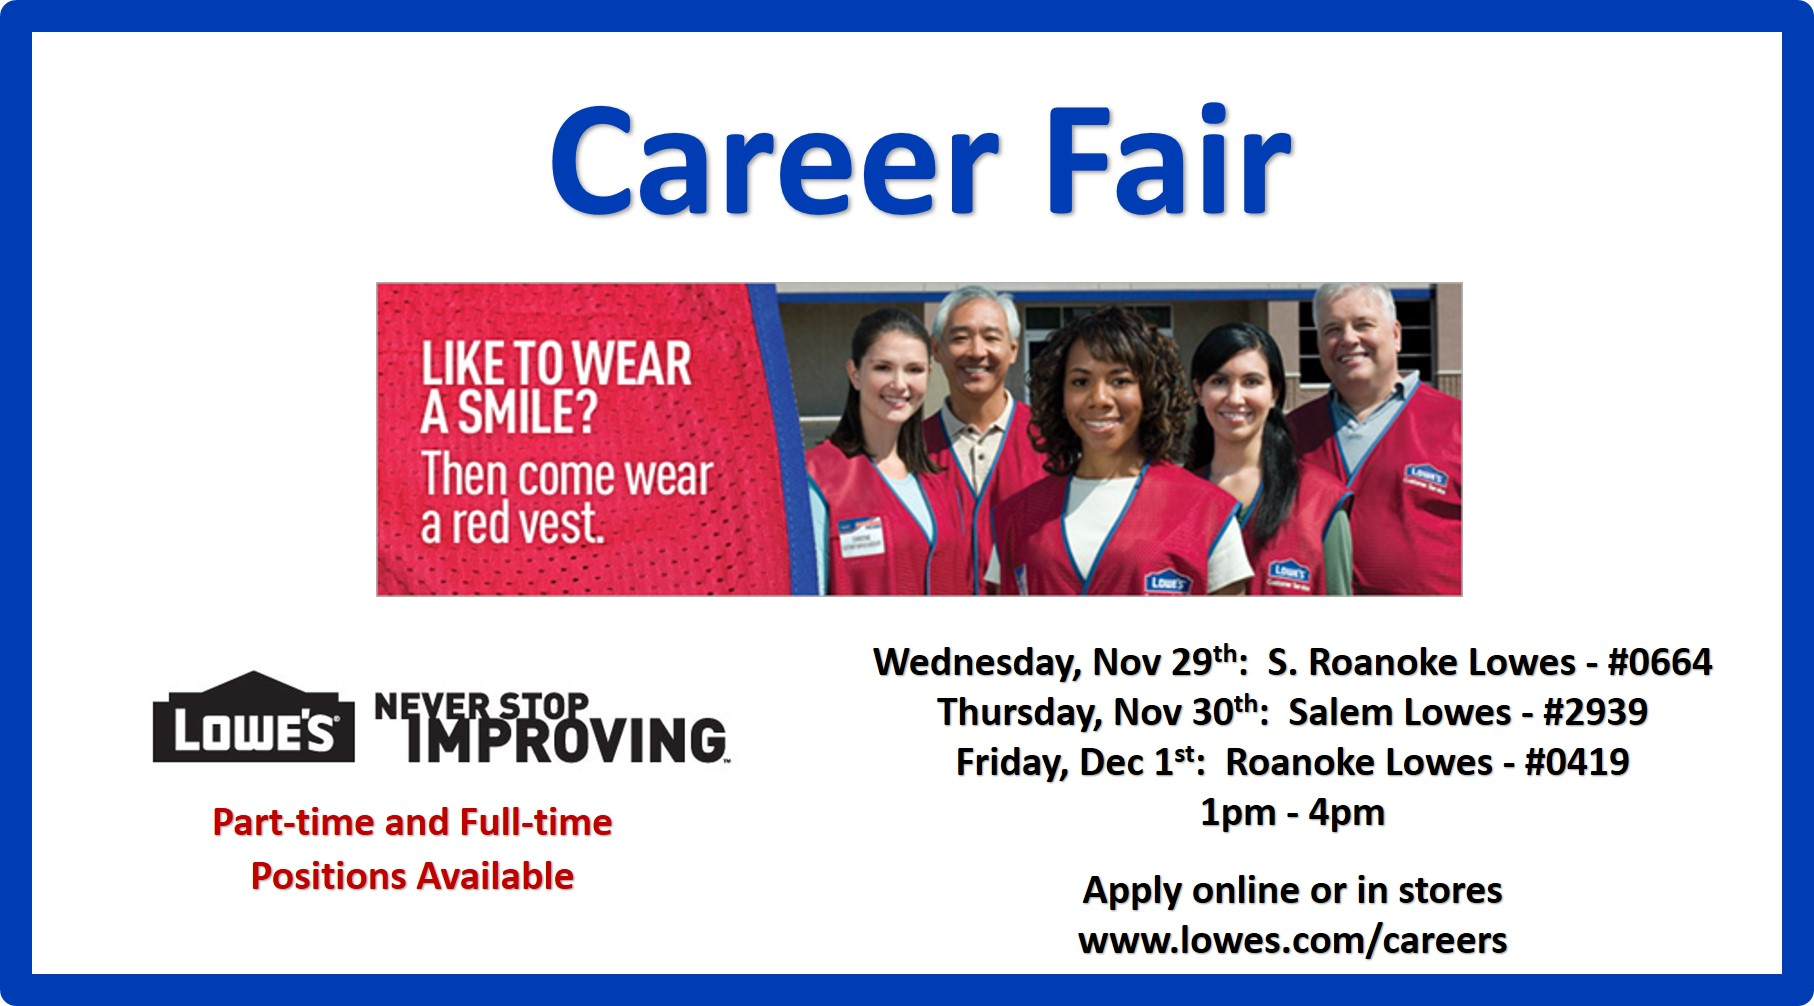 Lowes Harrisonburg Virginia >> Lowe's Roanoke Stores - Three Day Job Fair | Virginia Employment Commission